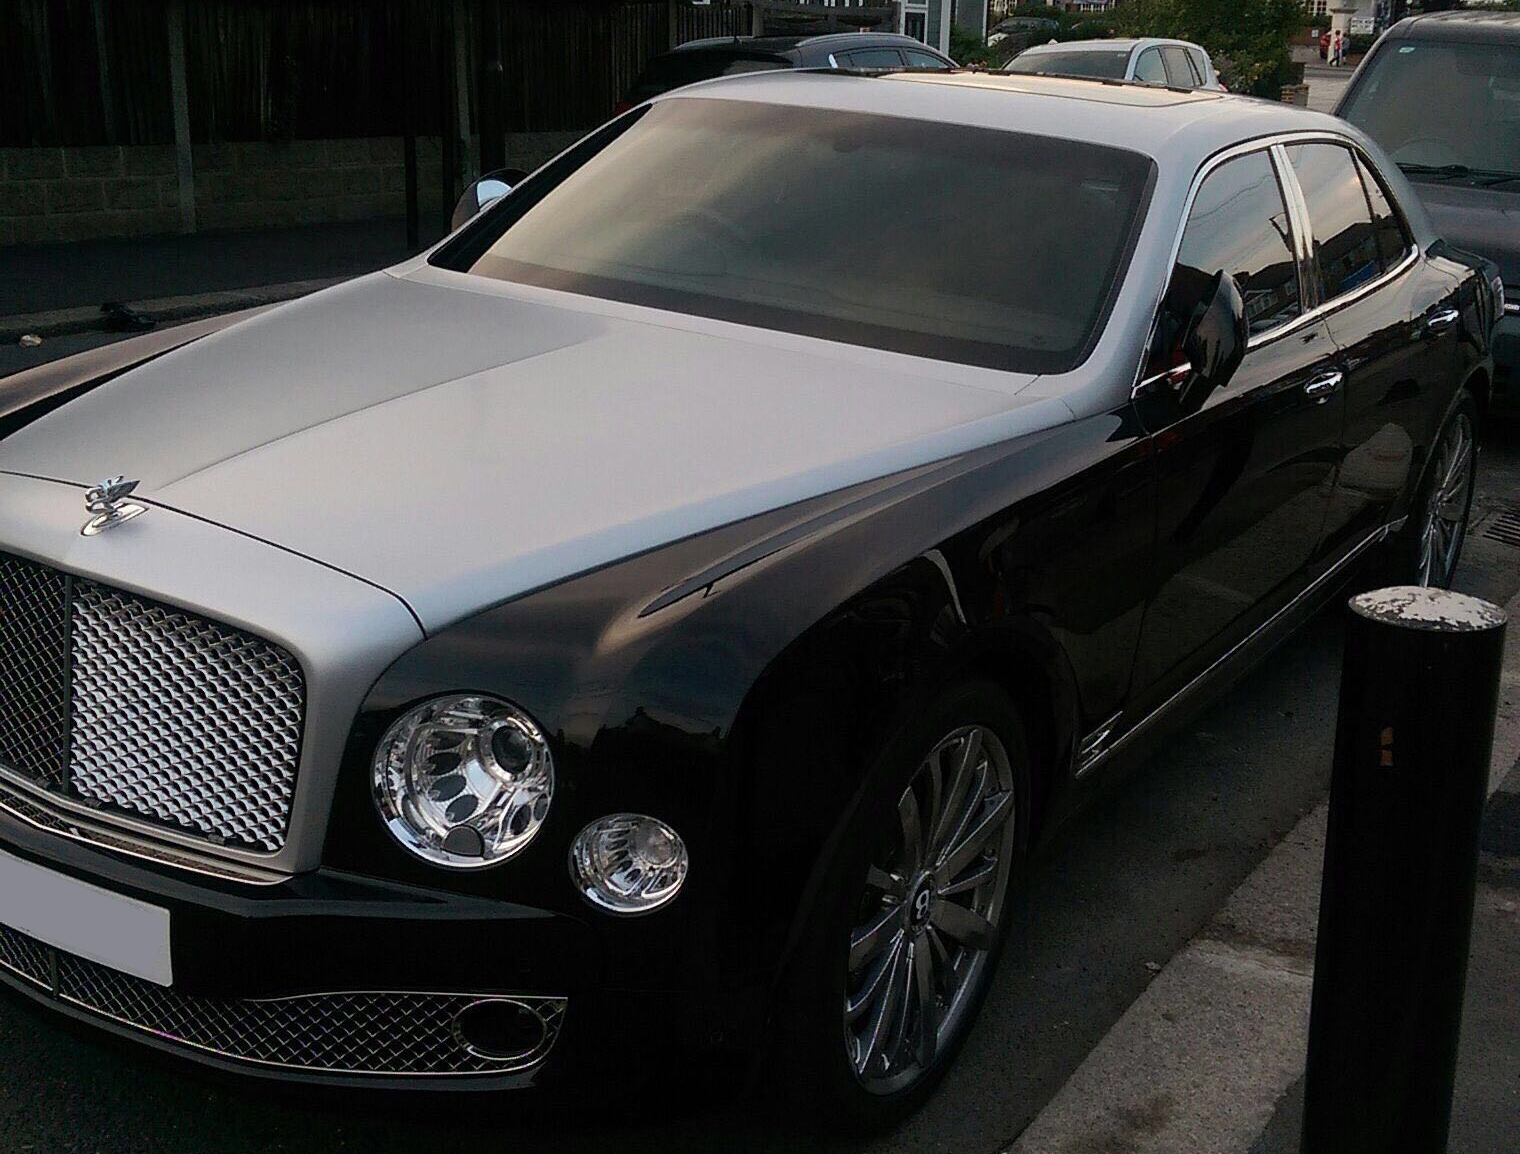 This Bentley Mulsanne is available for hire anywhere in UK.